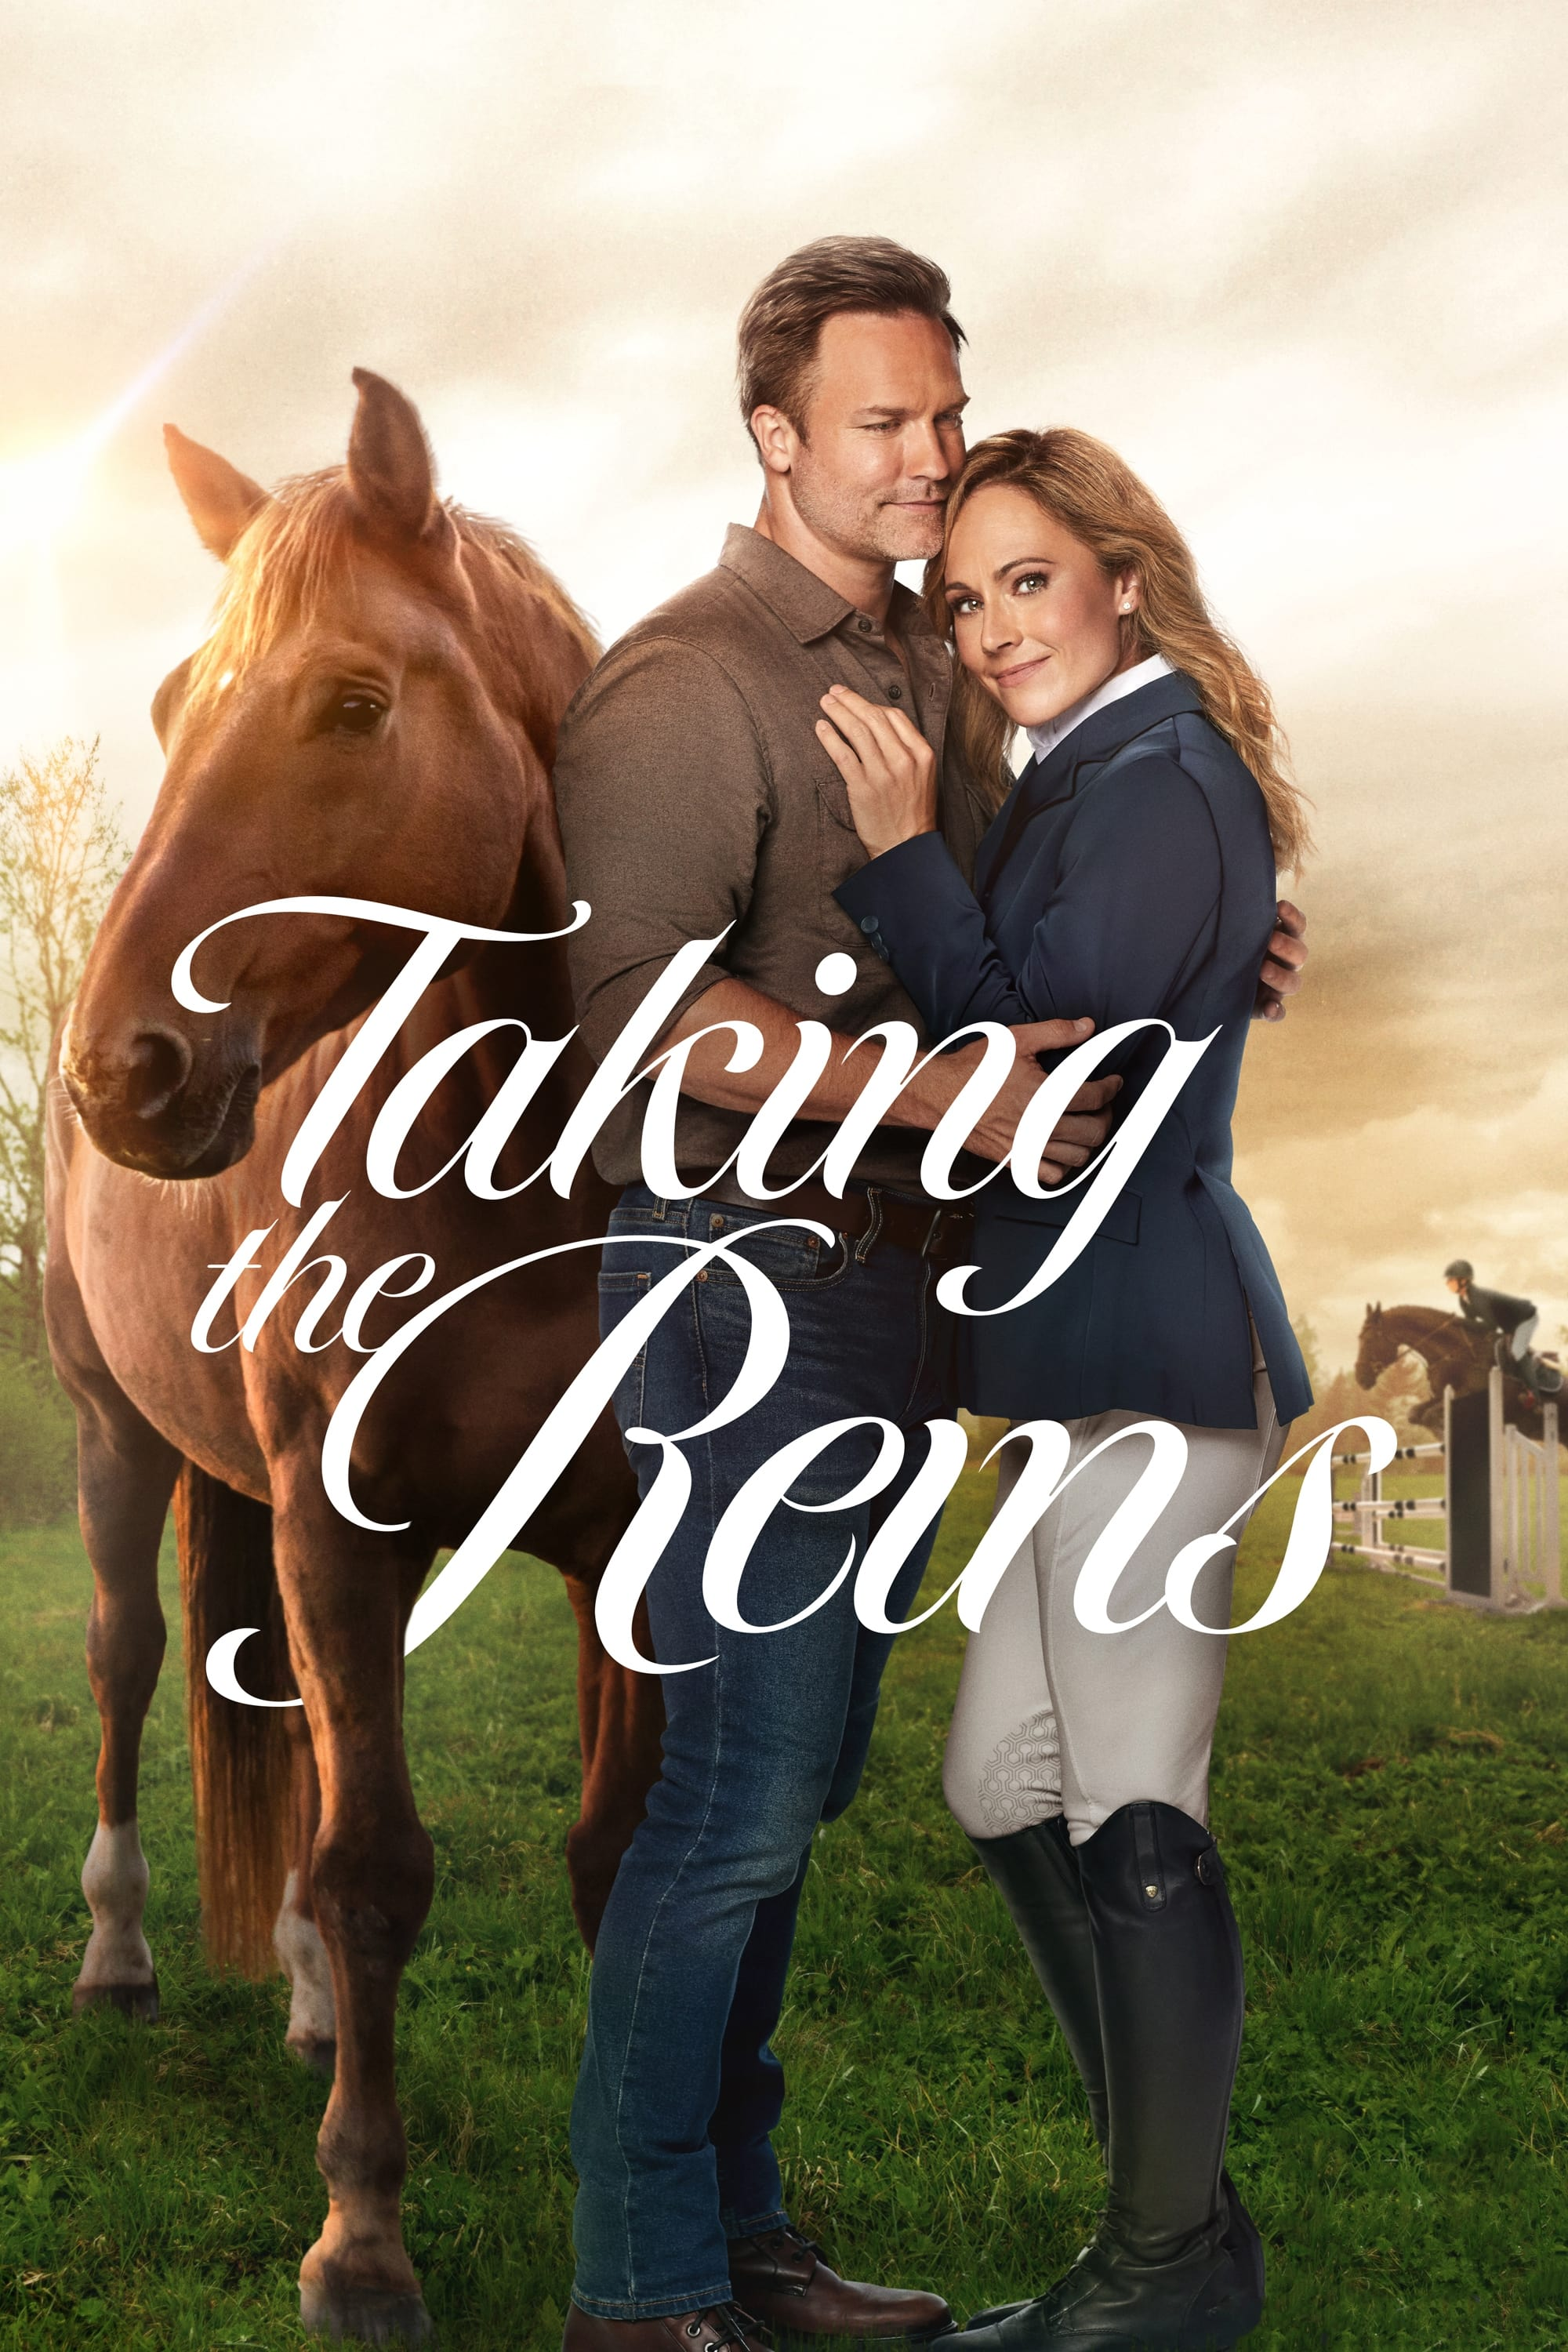 Taking the Reins (2021)